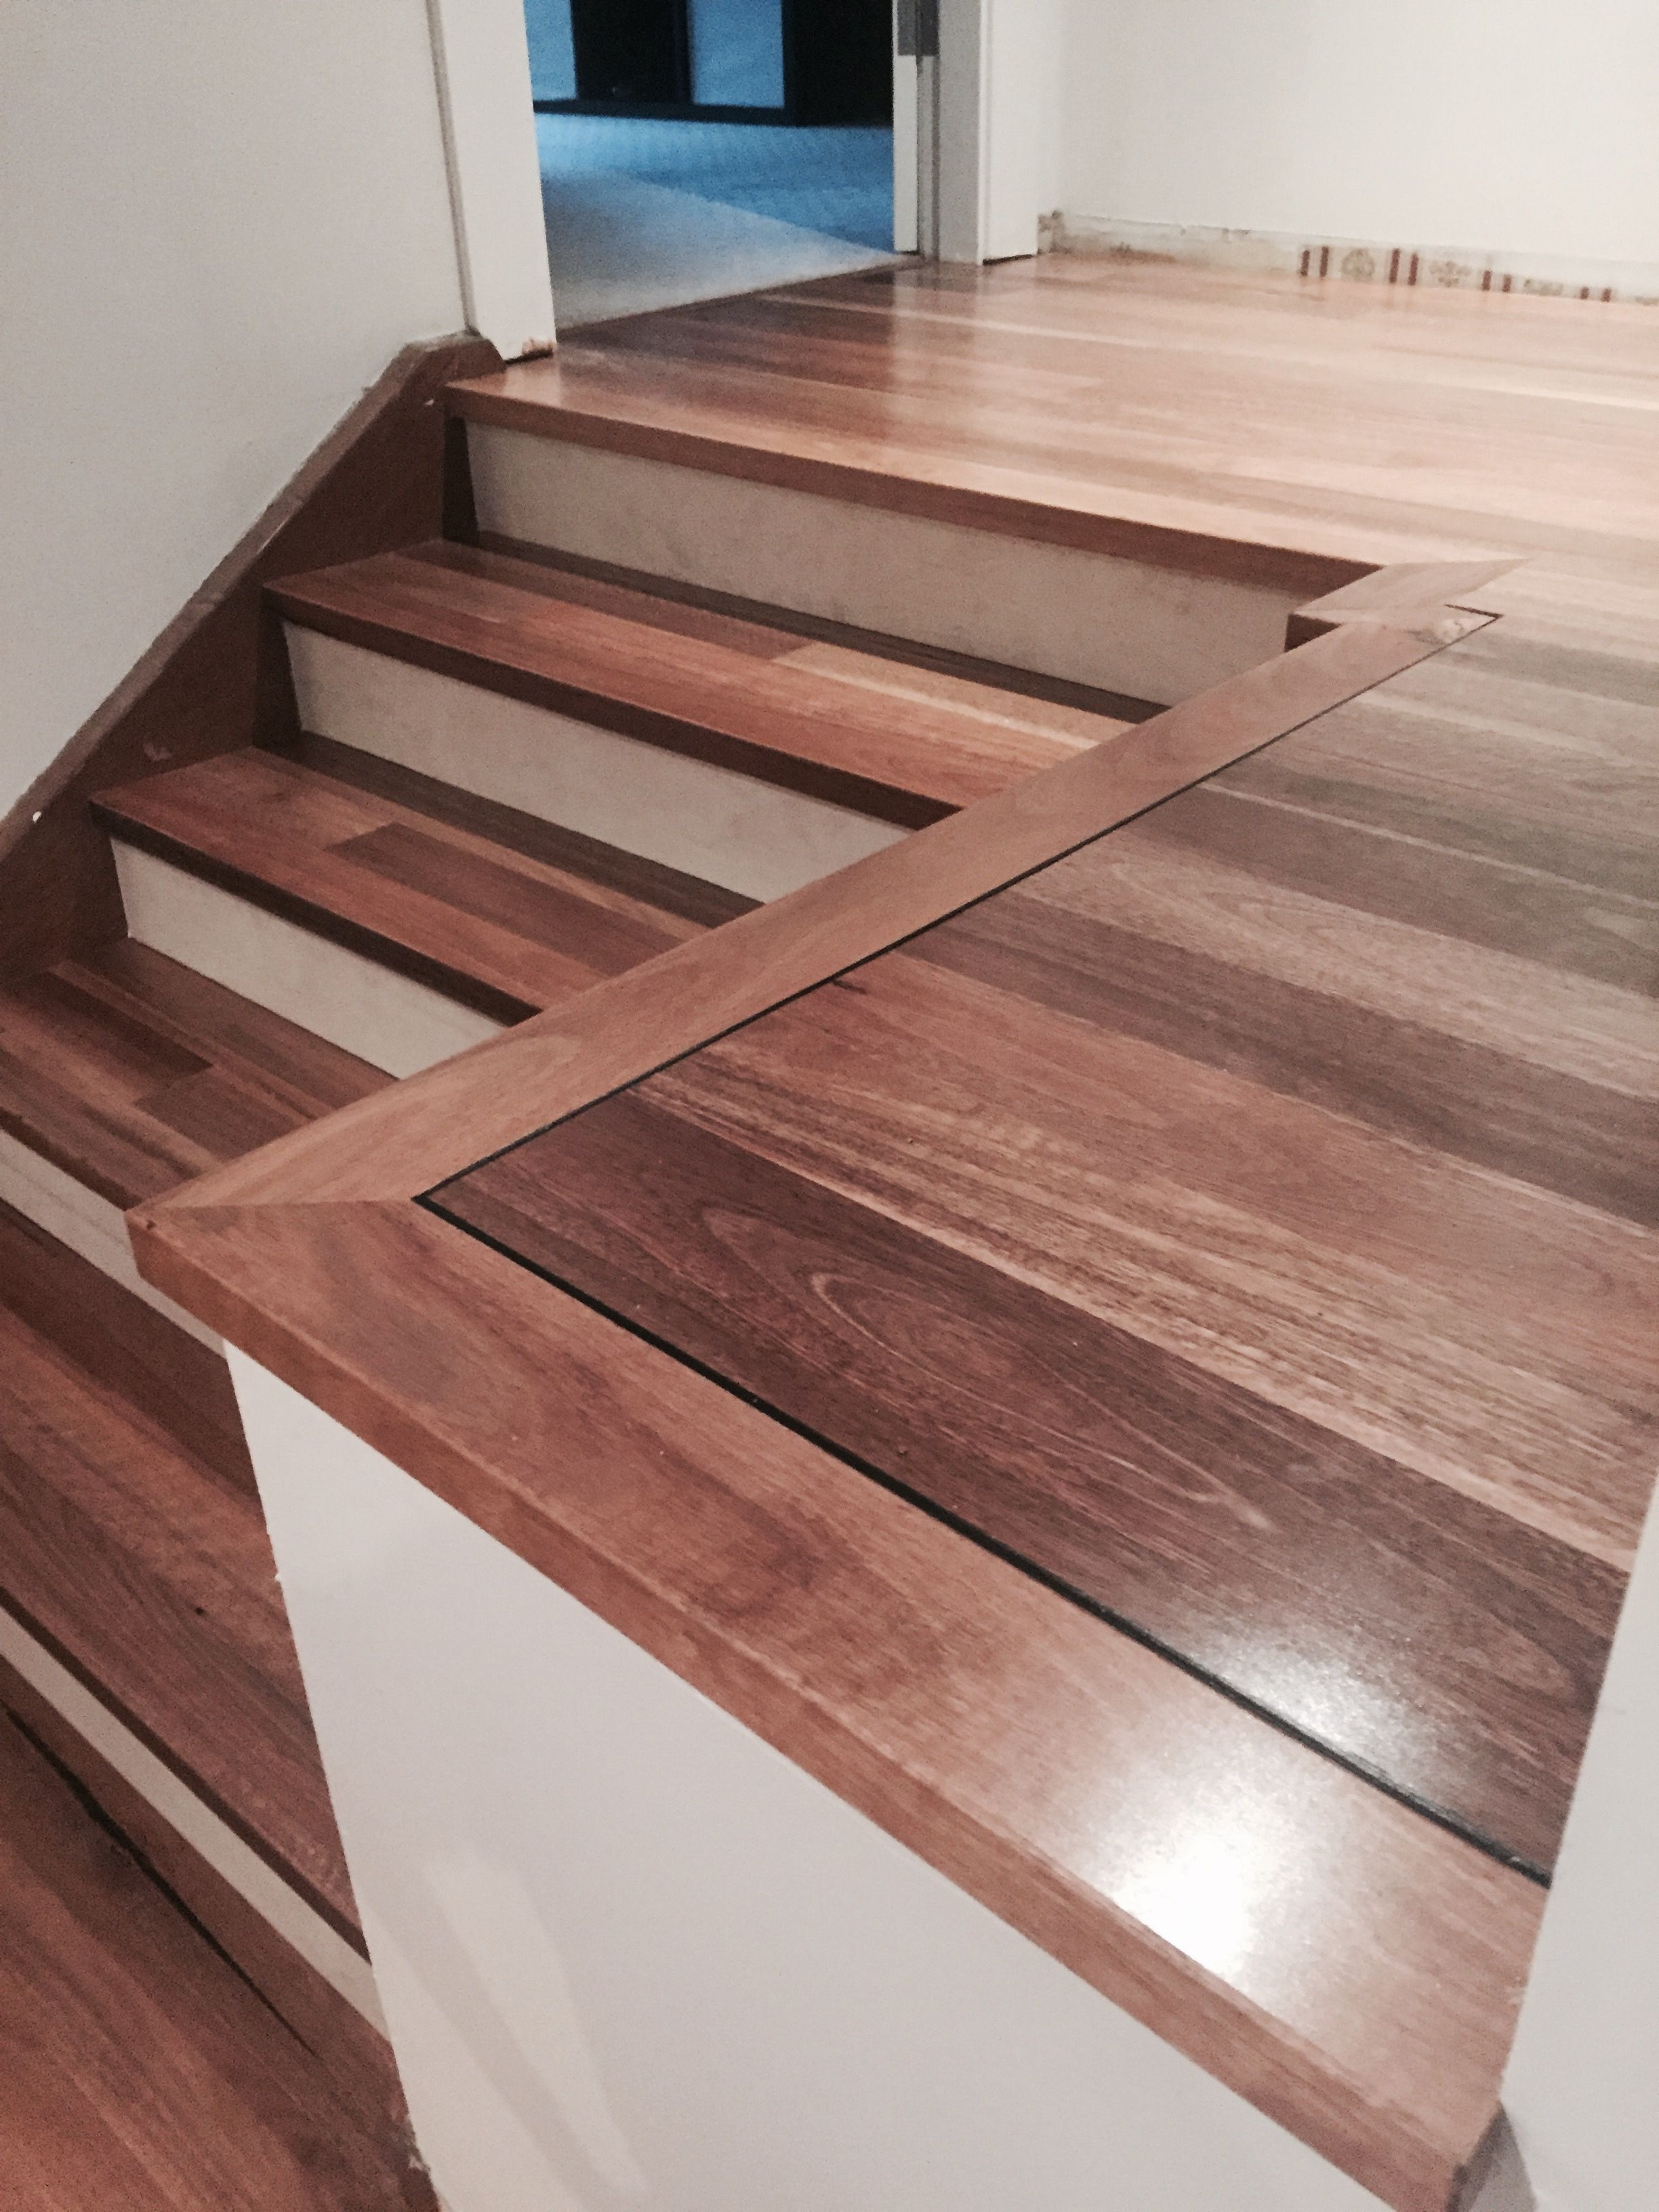 smooth timber surface australian gloss oak semi floors matte textured lifestyle floating floor southernmessmate home